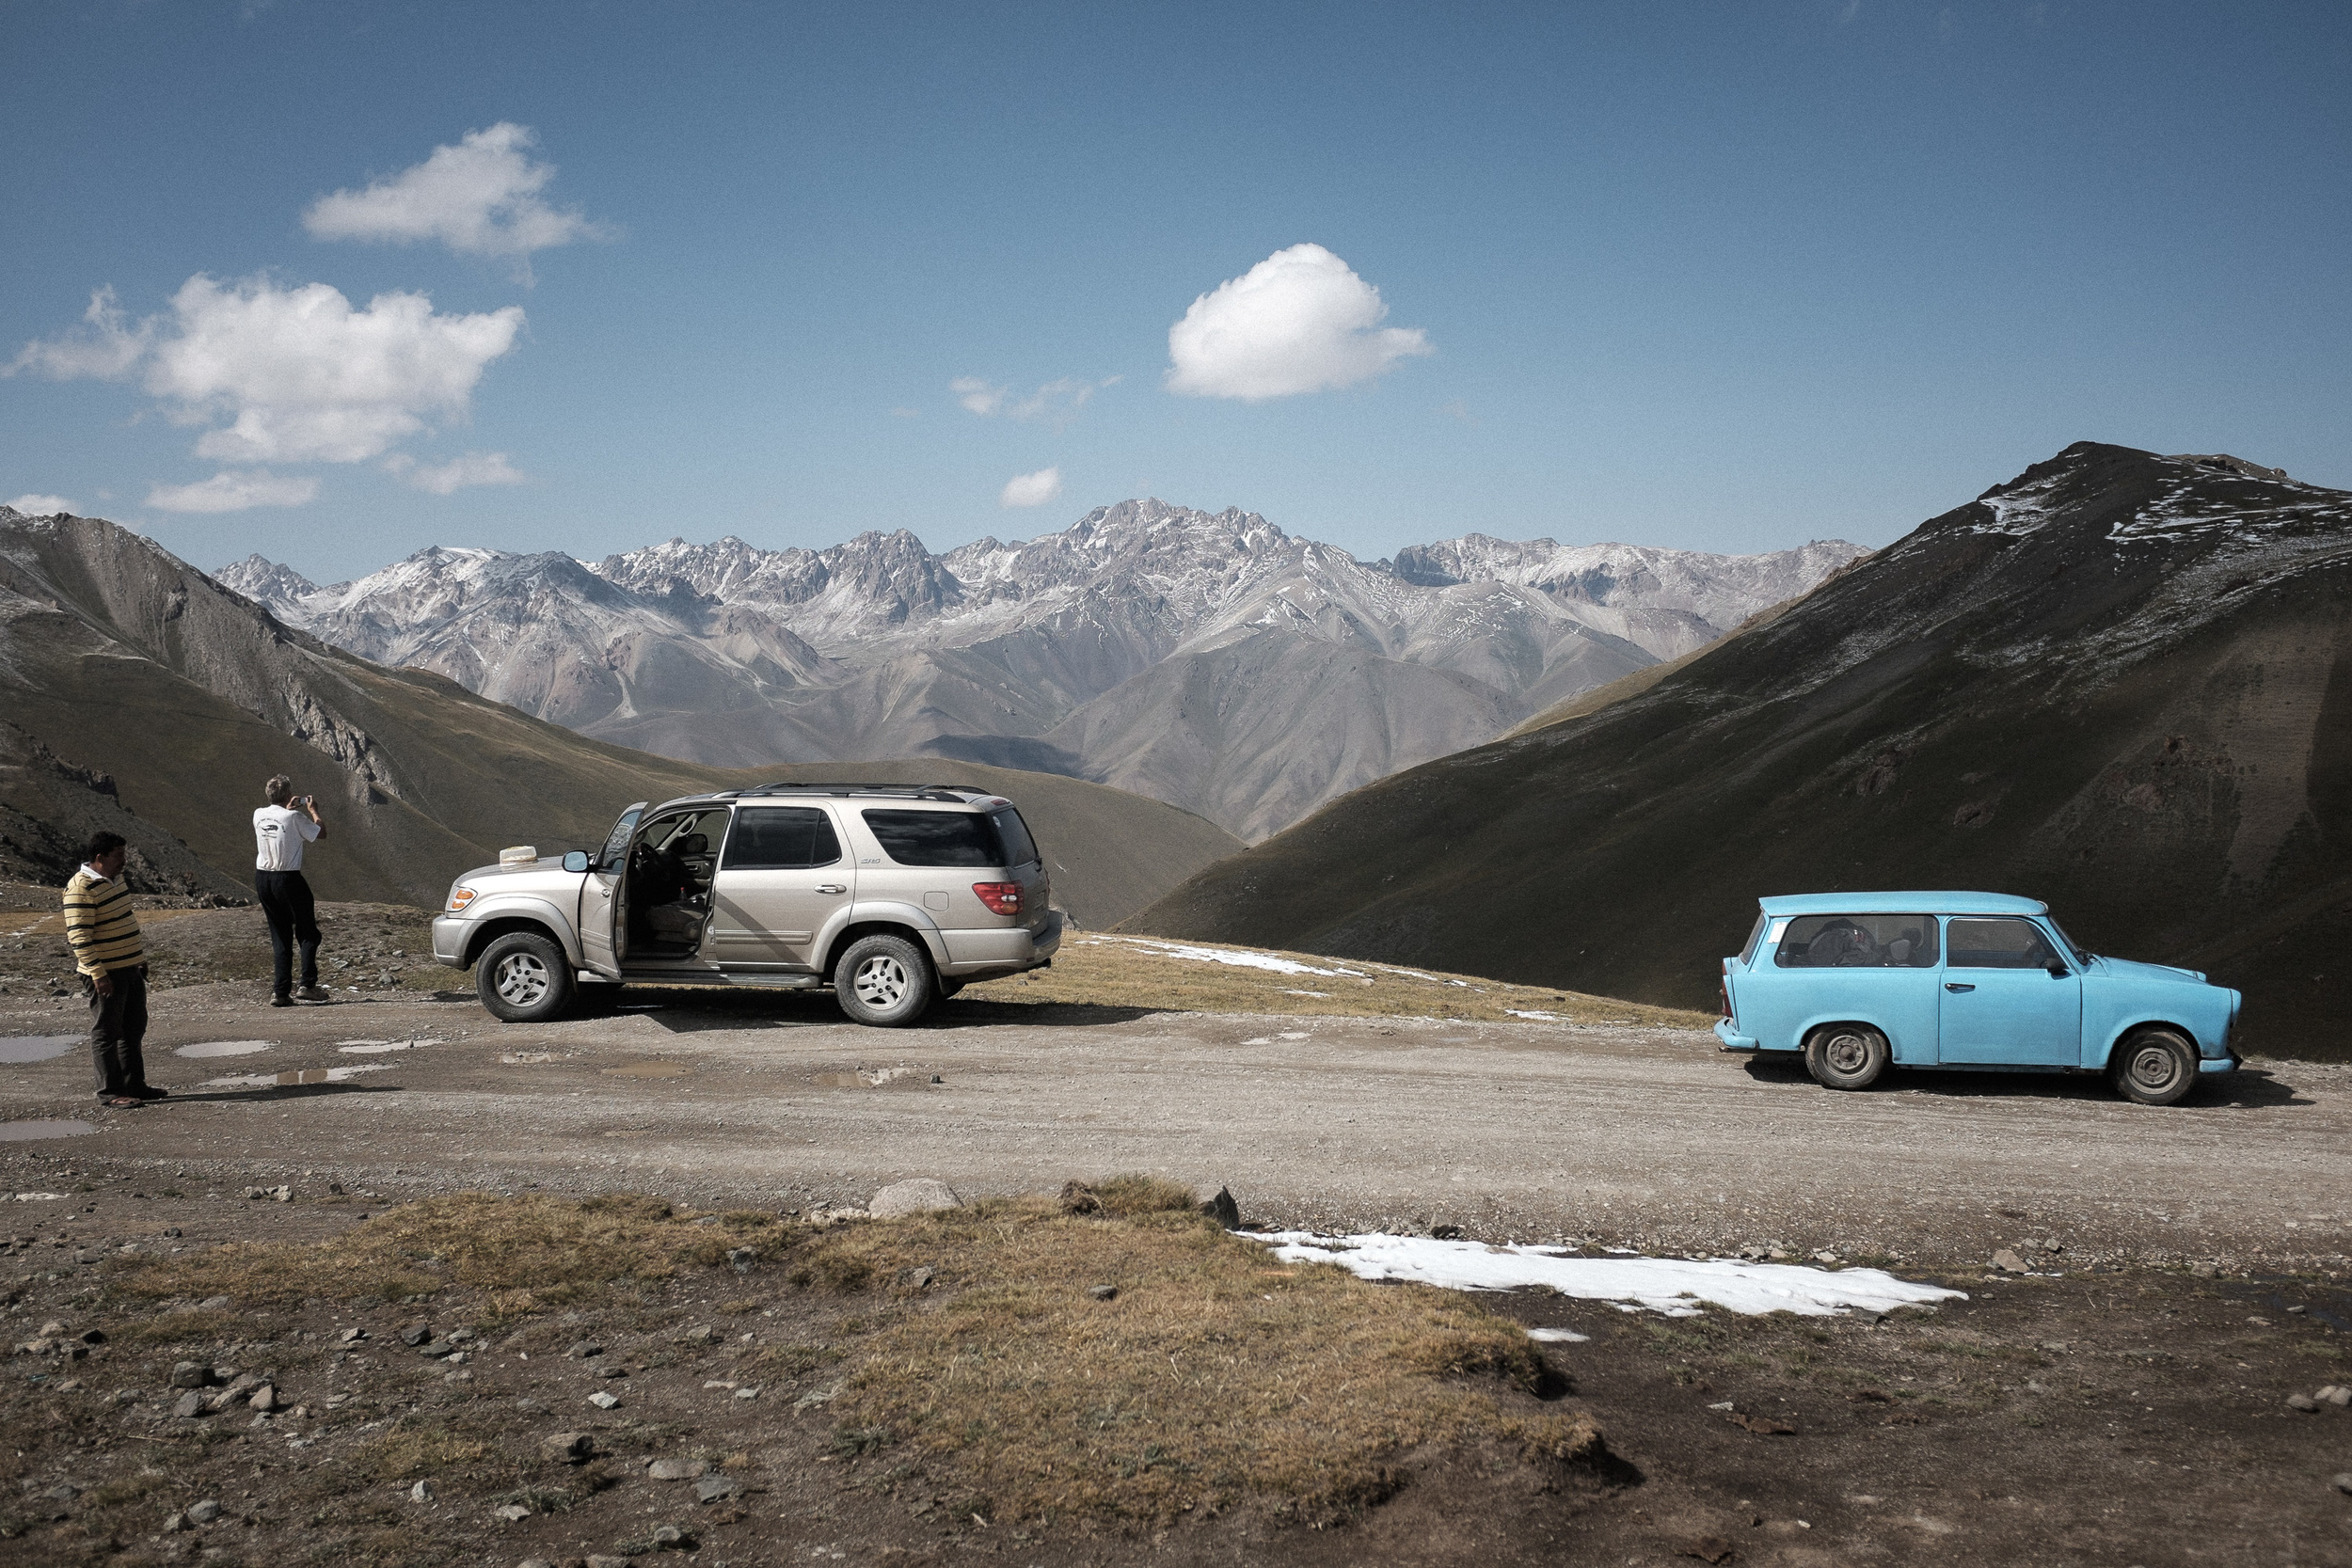 My adventures with Paul Hartl. Paul is an accountant from Canada and professional rally driver, was born in Czech Republic. Paul started an overland journey from Prague with his friend and this lovely blue Trabant. It was a pleasure to have a few days break with him at one of Central-Asia's best place, the Song-Köl lake.